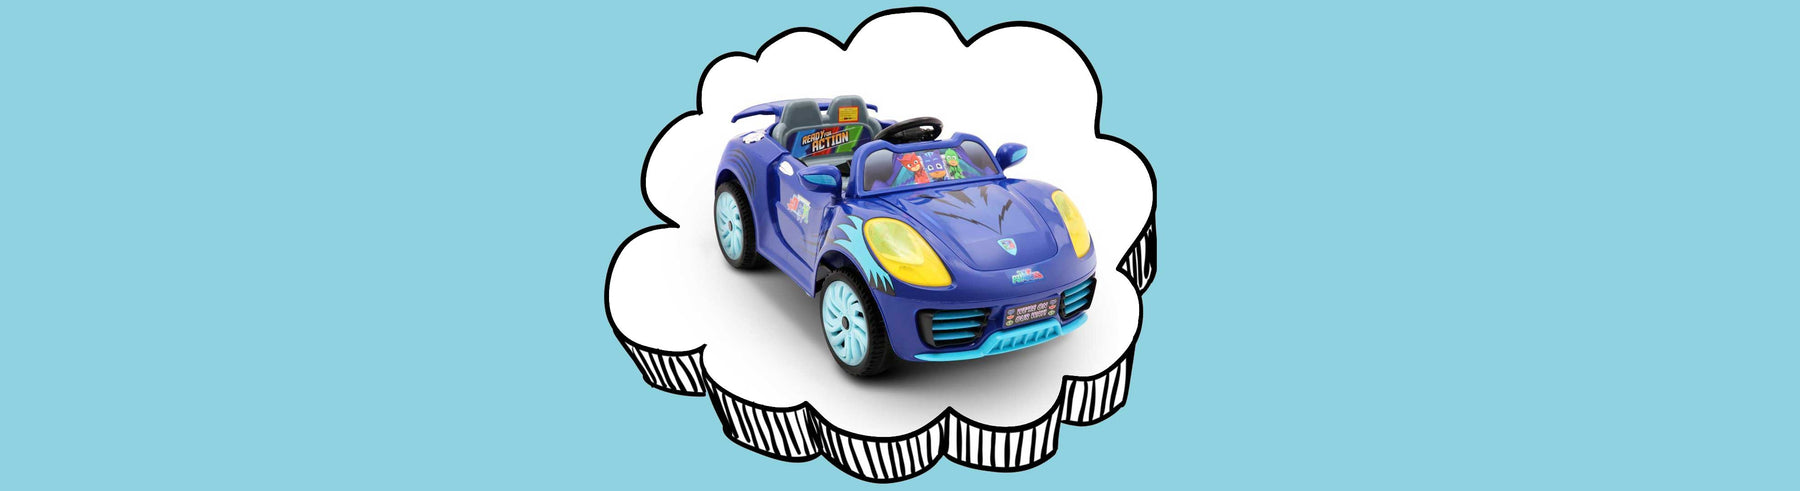 Disney Licensed PJ Masks Kids Ride On Car